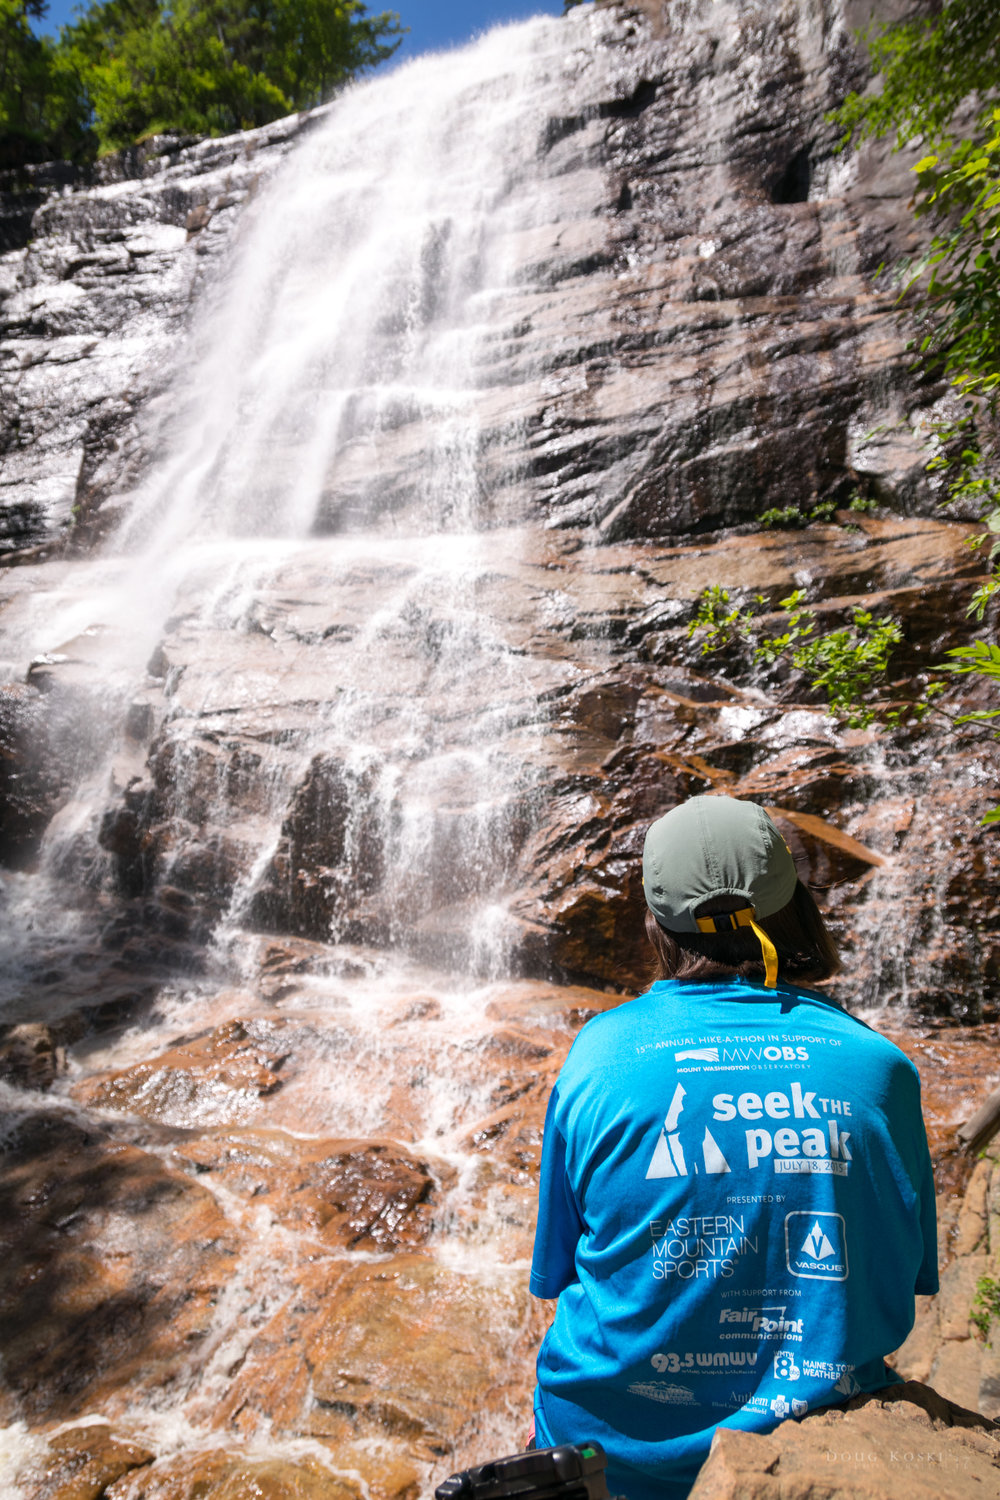 A beautiful reward to our climb! - The rain from the previous front had supplied ample water for our visit. We sat and enjoyed the falls for quite some time, but made sure to squeeze in a couple photo-ops as well.